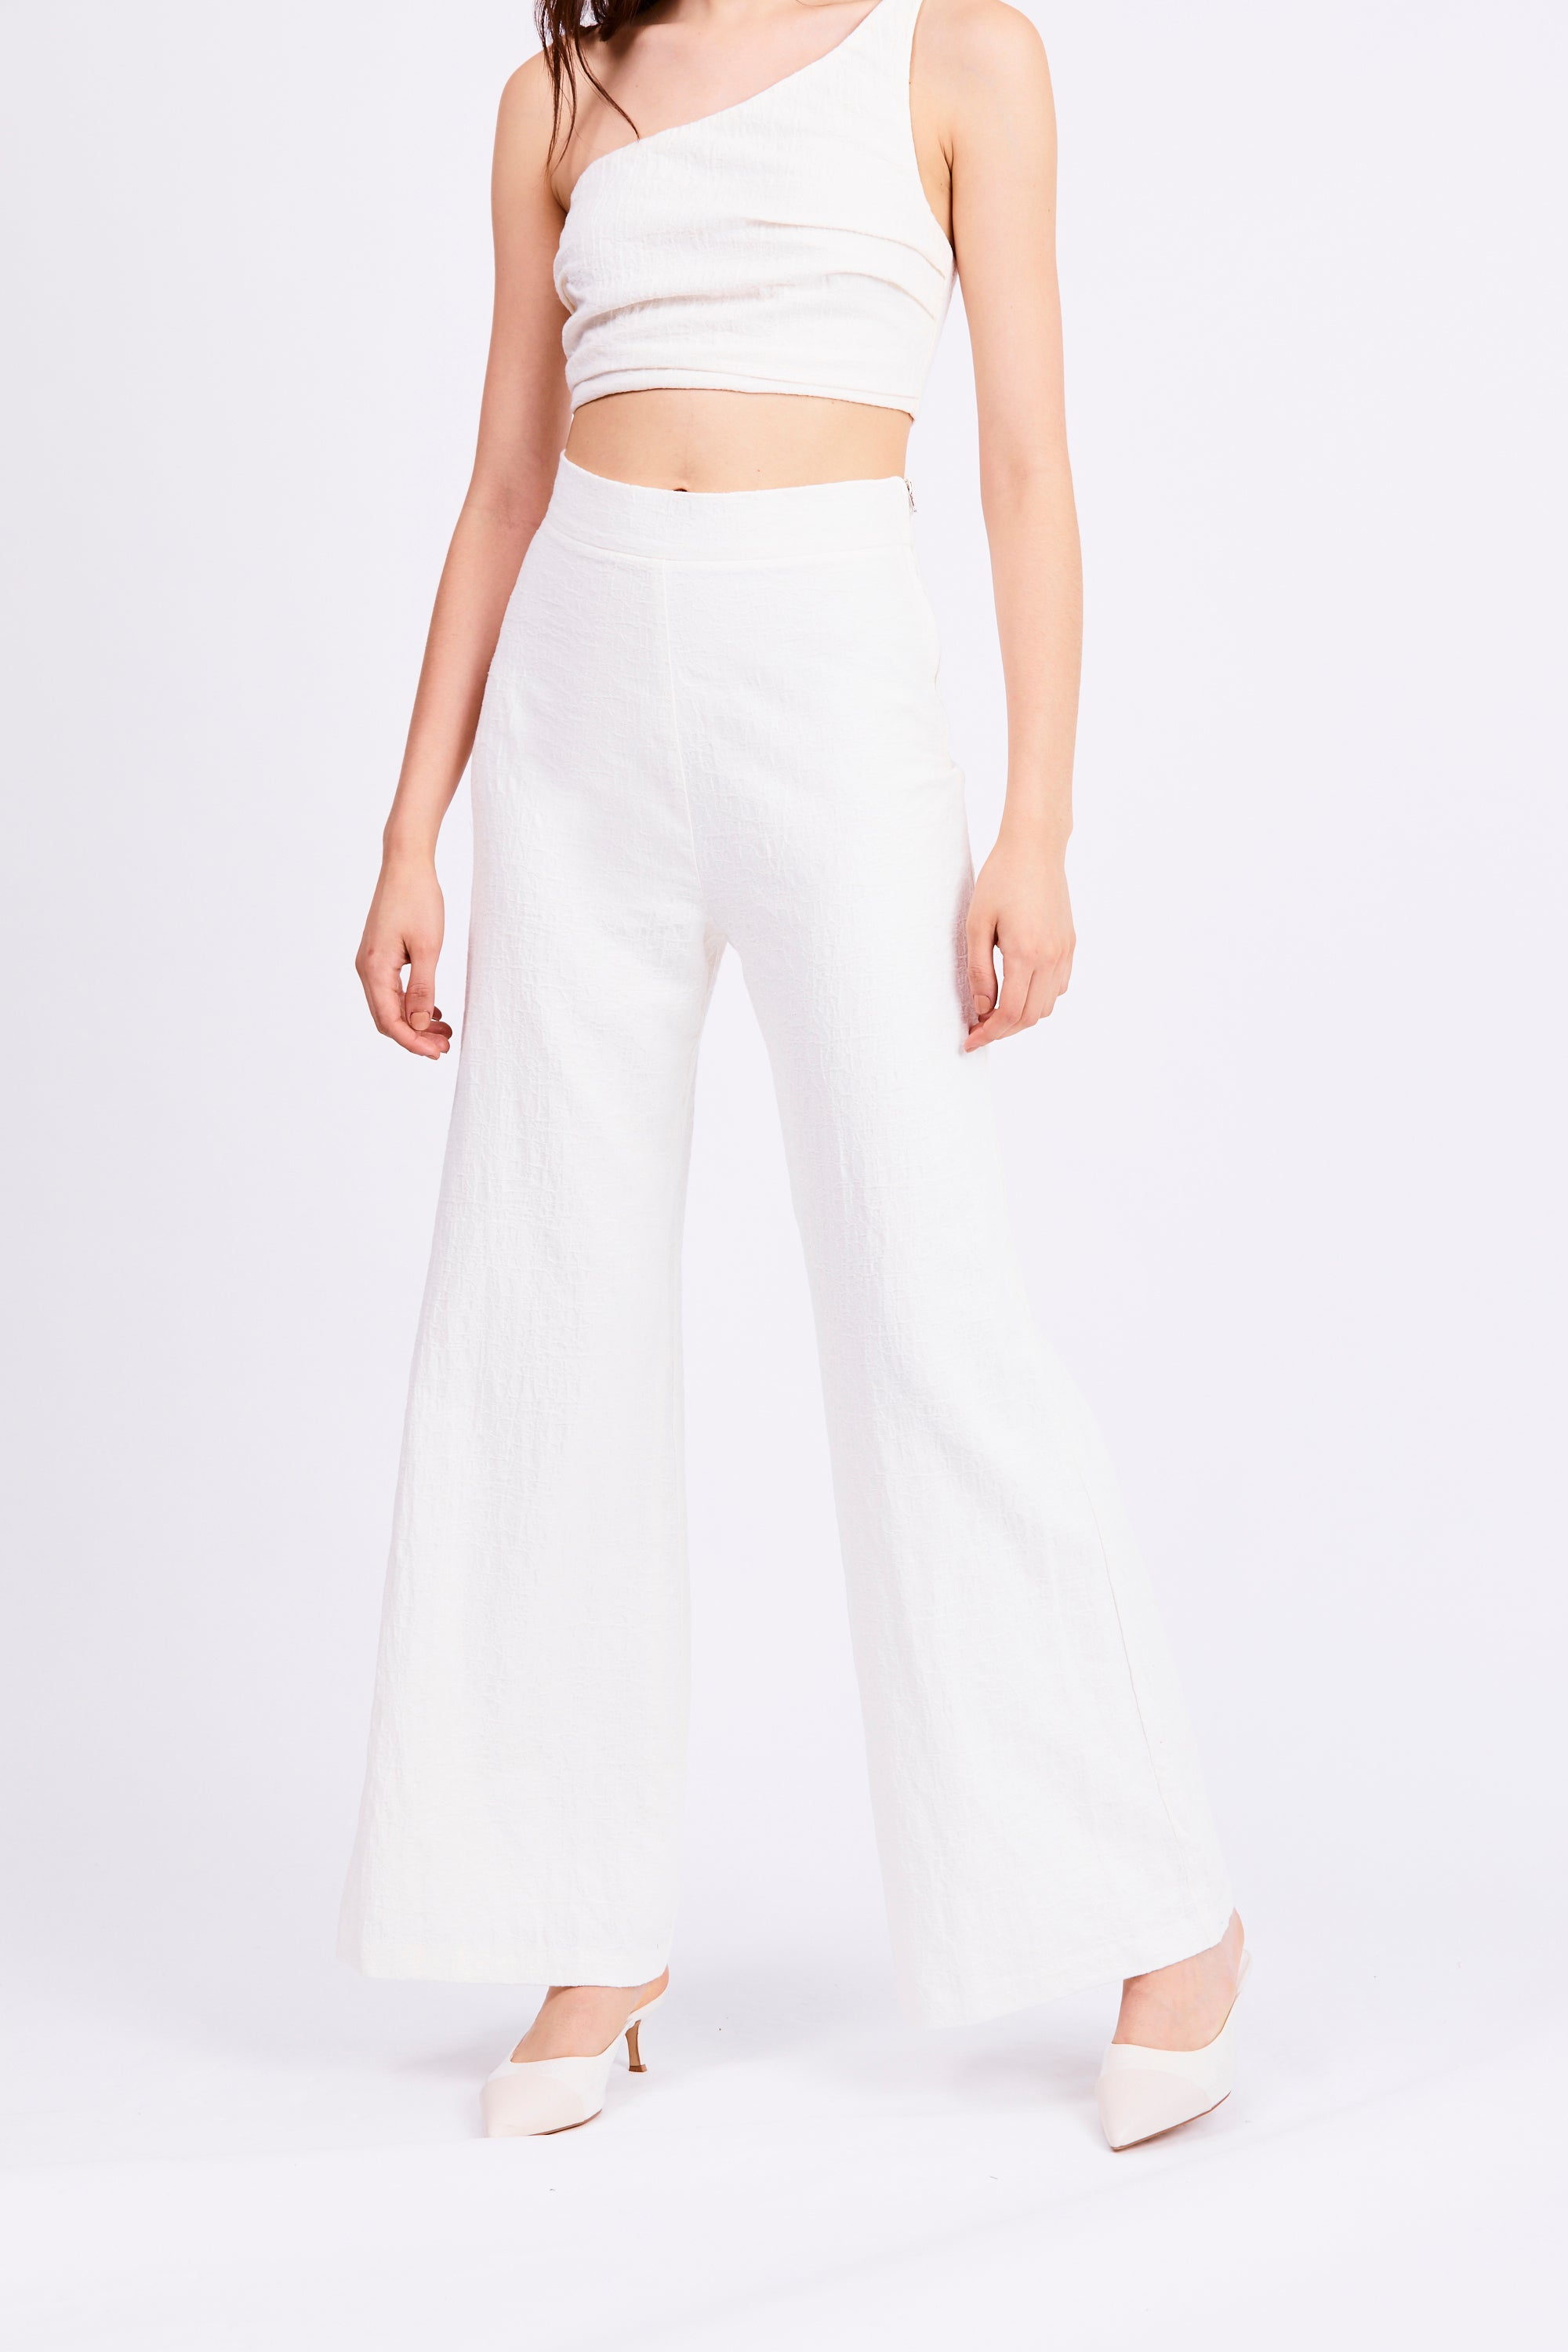 DRIFTER TROUSER | WHITE